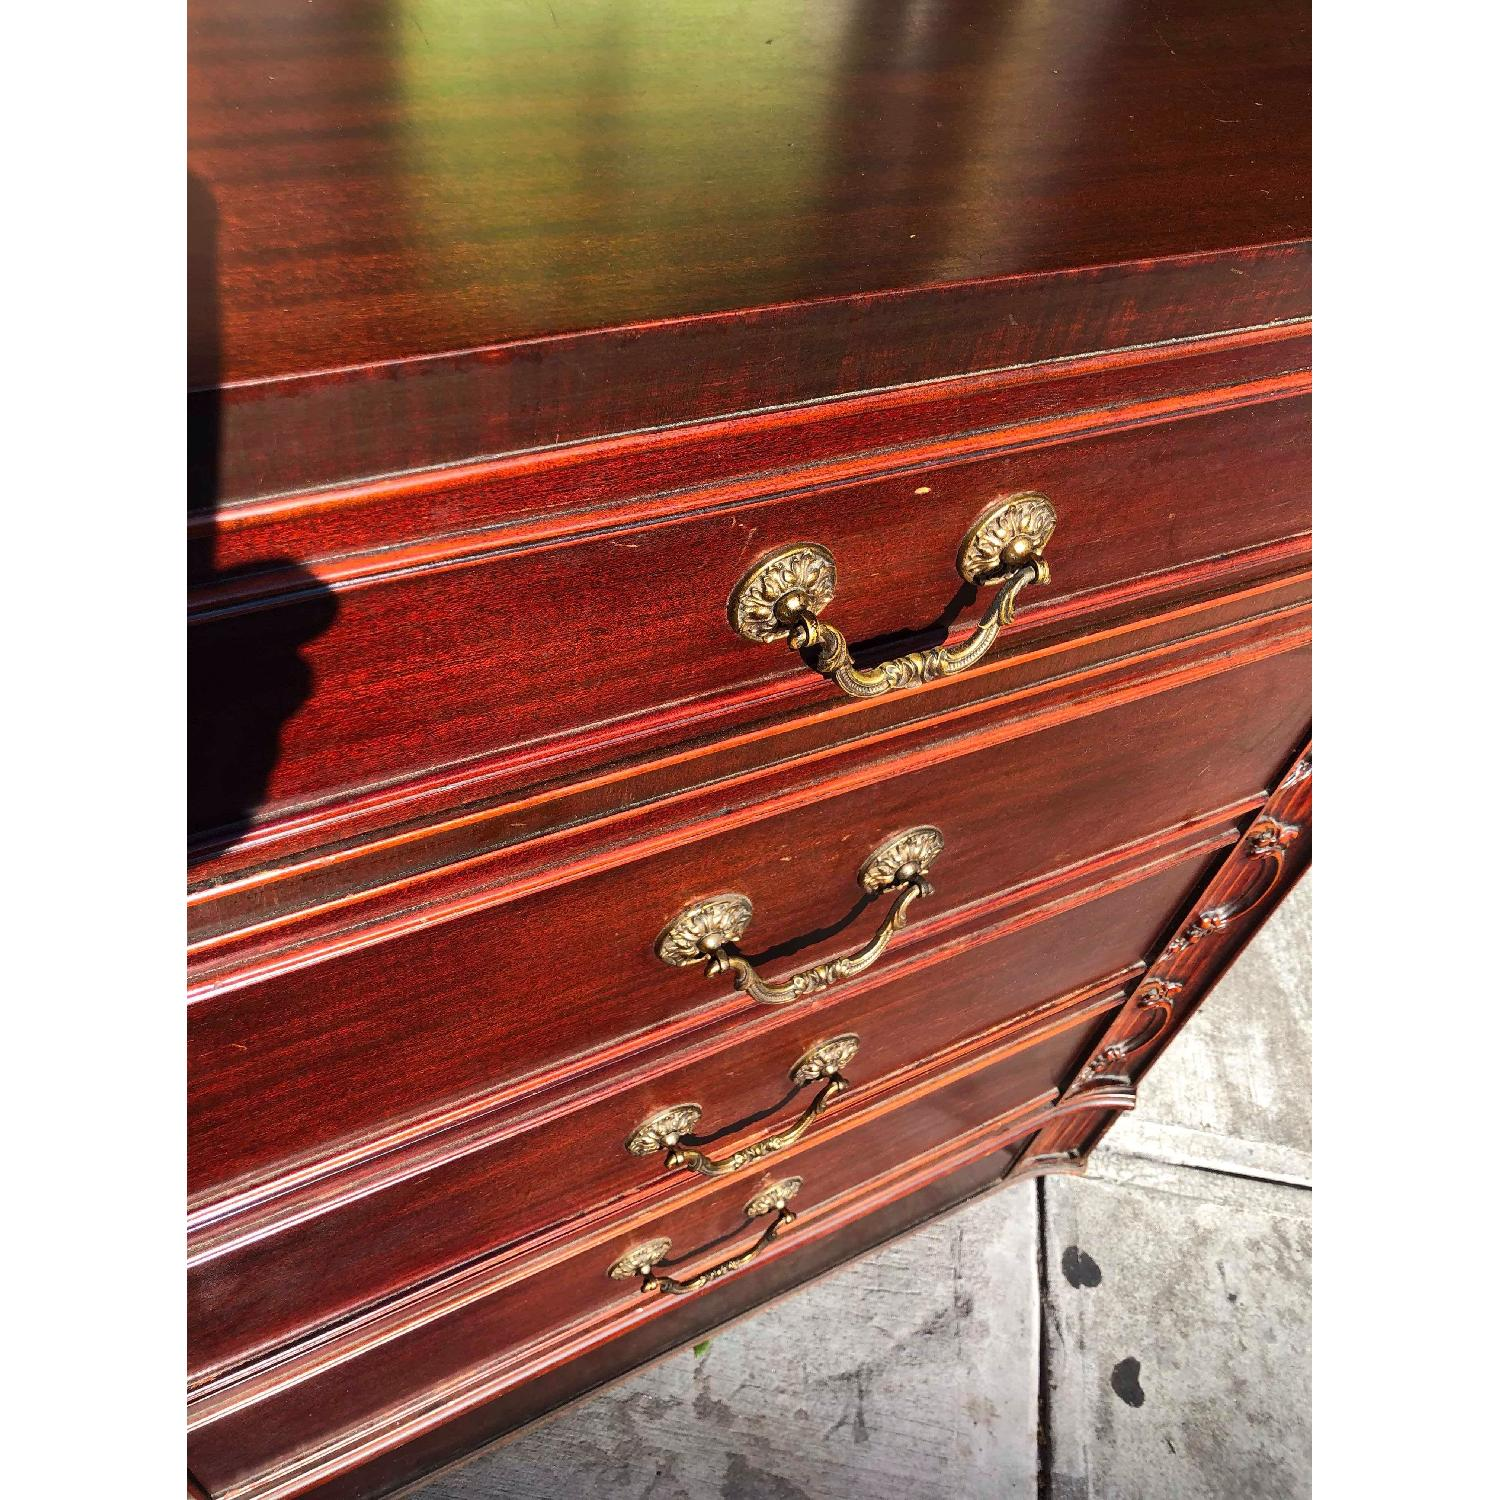 Antique 1930s Cherry Wood Leather Front 8 Drawer Dresser - image-6